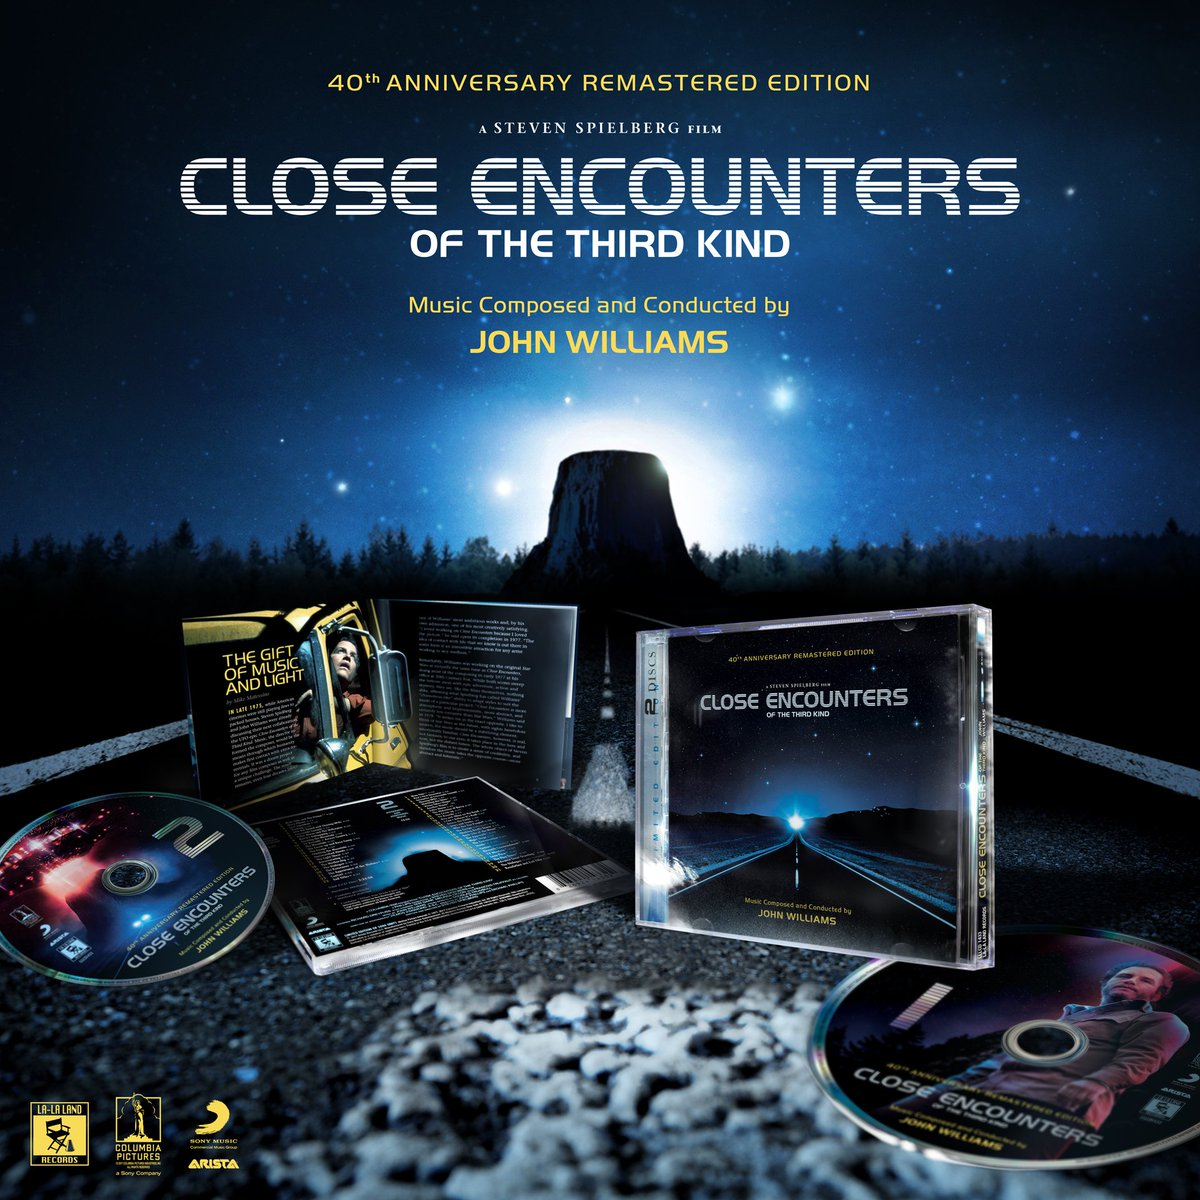 Coming 11/28 from  http:// lalalandrecords.com  &nbsp;   – limited edition 40th Anniversary Remastered 2-CD #soundtrack #CloseEncounters of the Third Kind by #JohnWilliams #StevenSpielberg #film <br>http://pic.twitter.com/GKmU9YCWV4